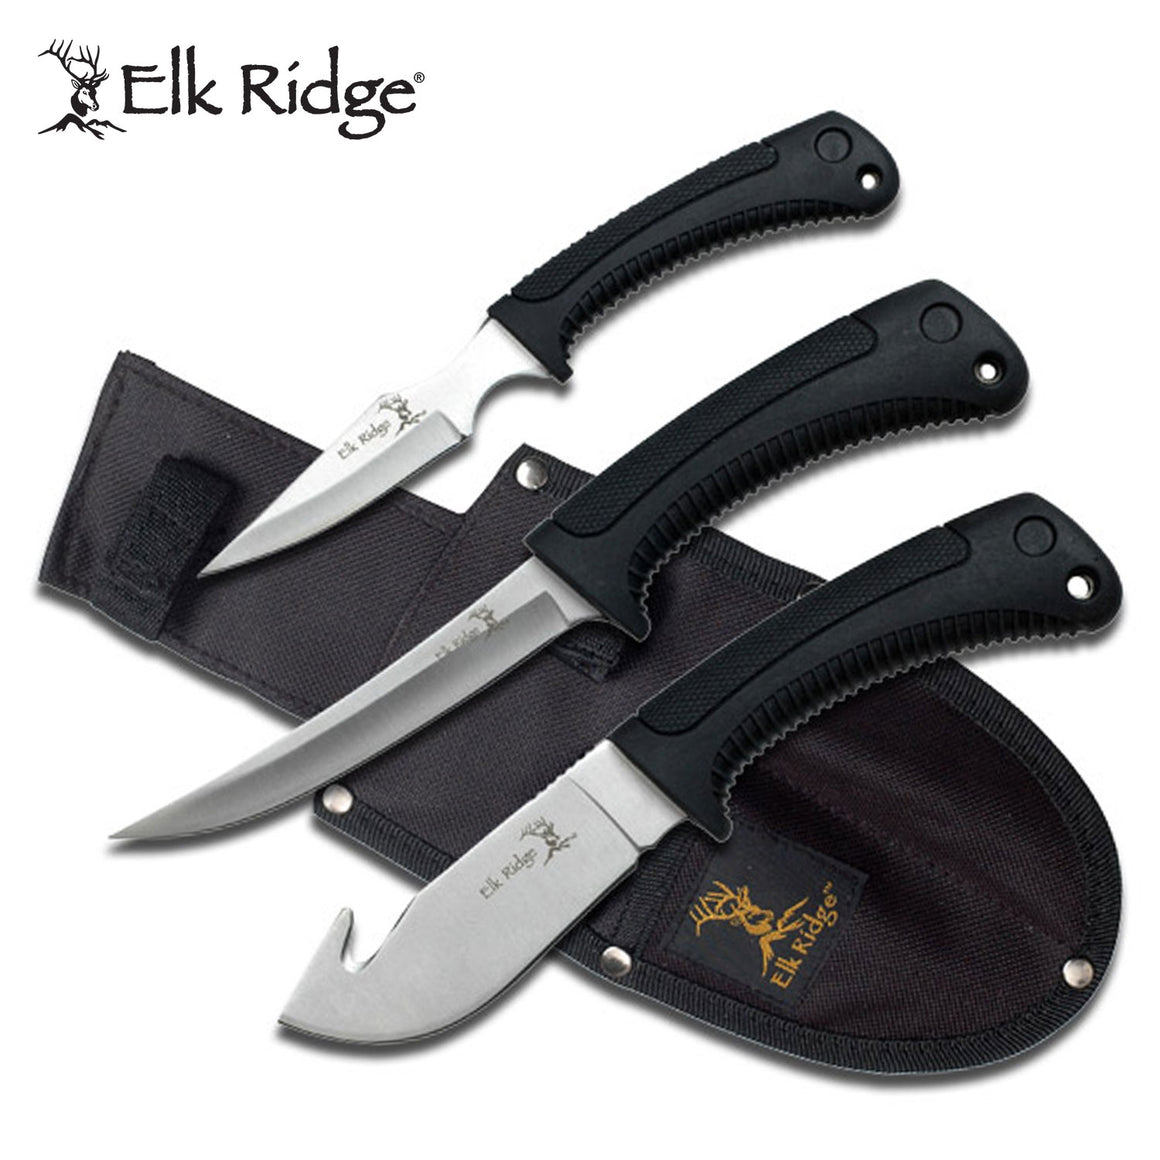 Elk Ridge ER-261 Hunting Knife Set